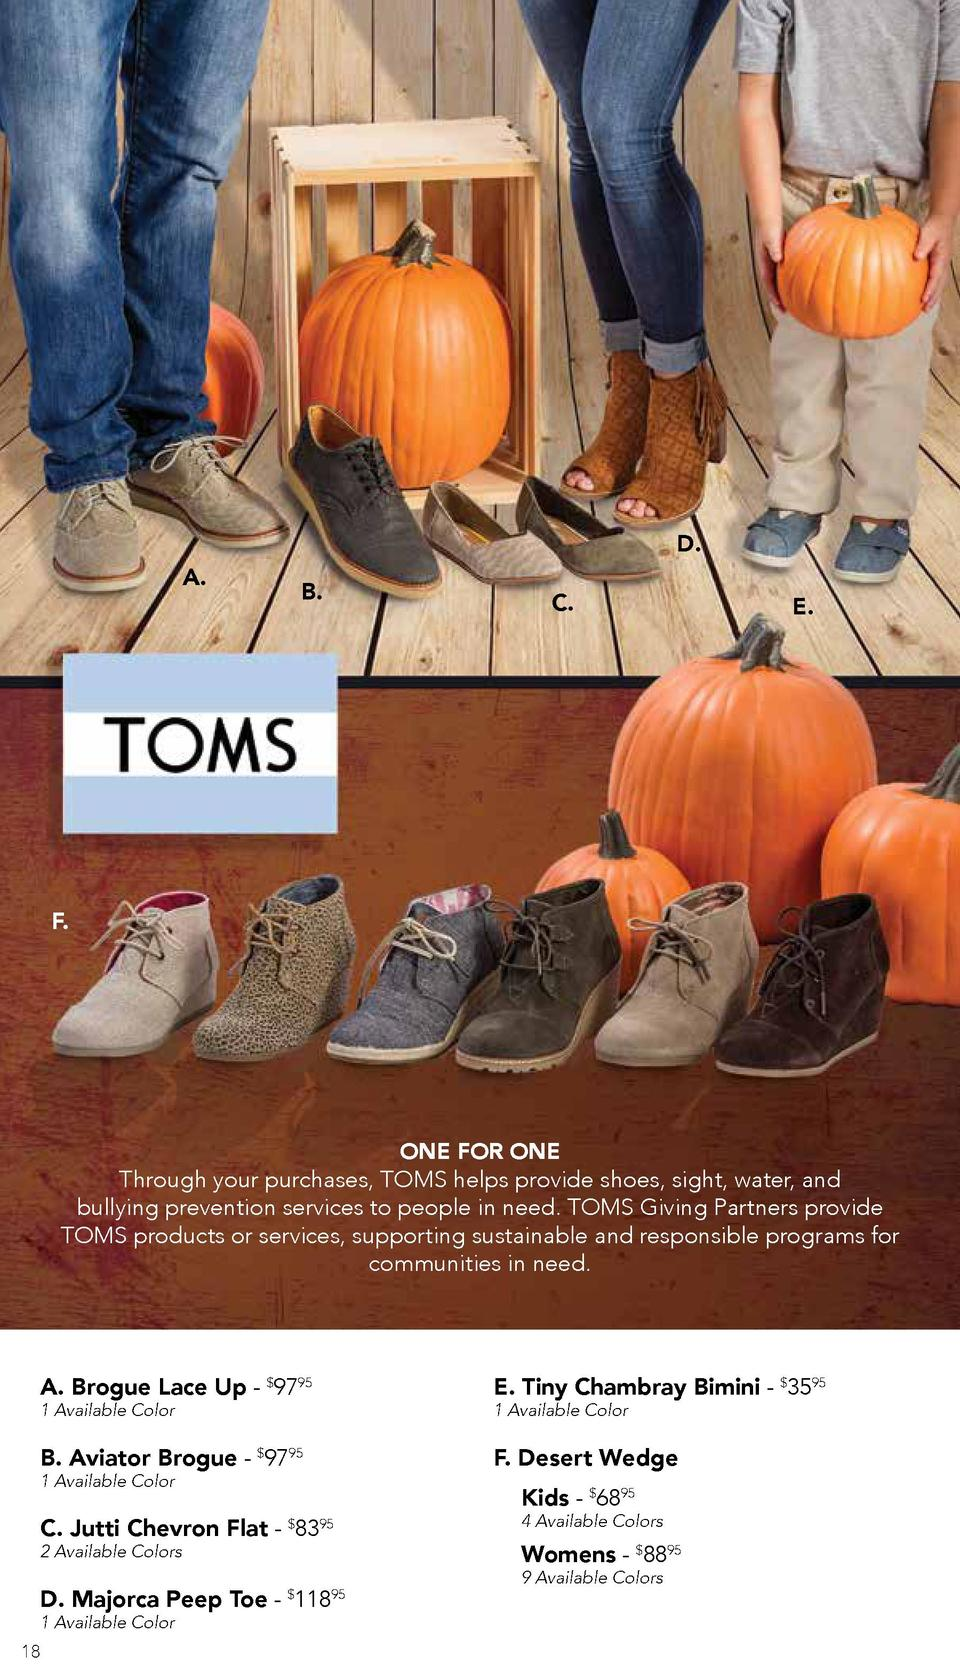 D.  A.  B.  C.  E.  F.  ONE FOR ONE Through your purchases, TOMS helps provide shoes, sight, water, and bullying preventio...